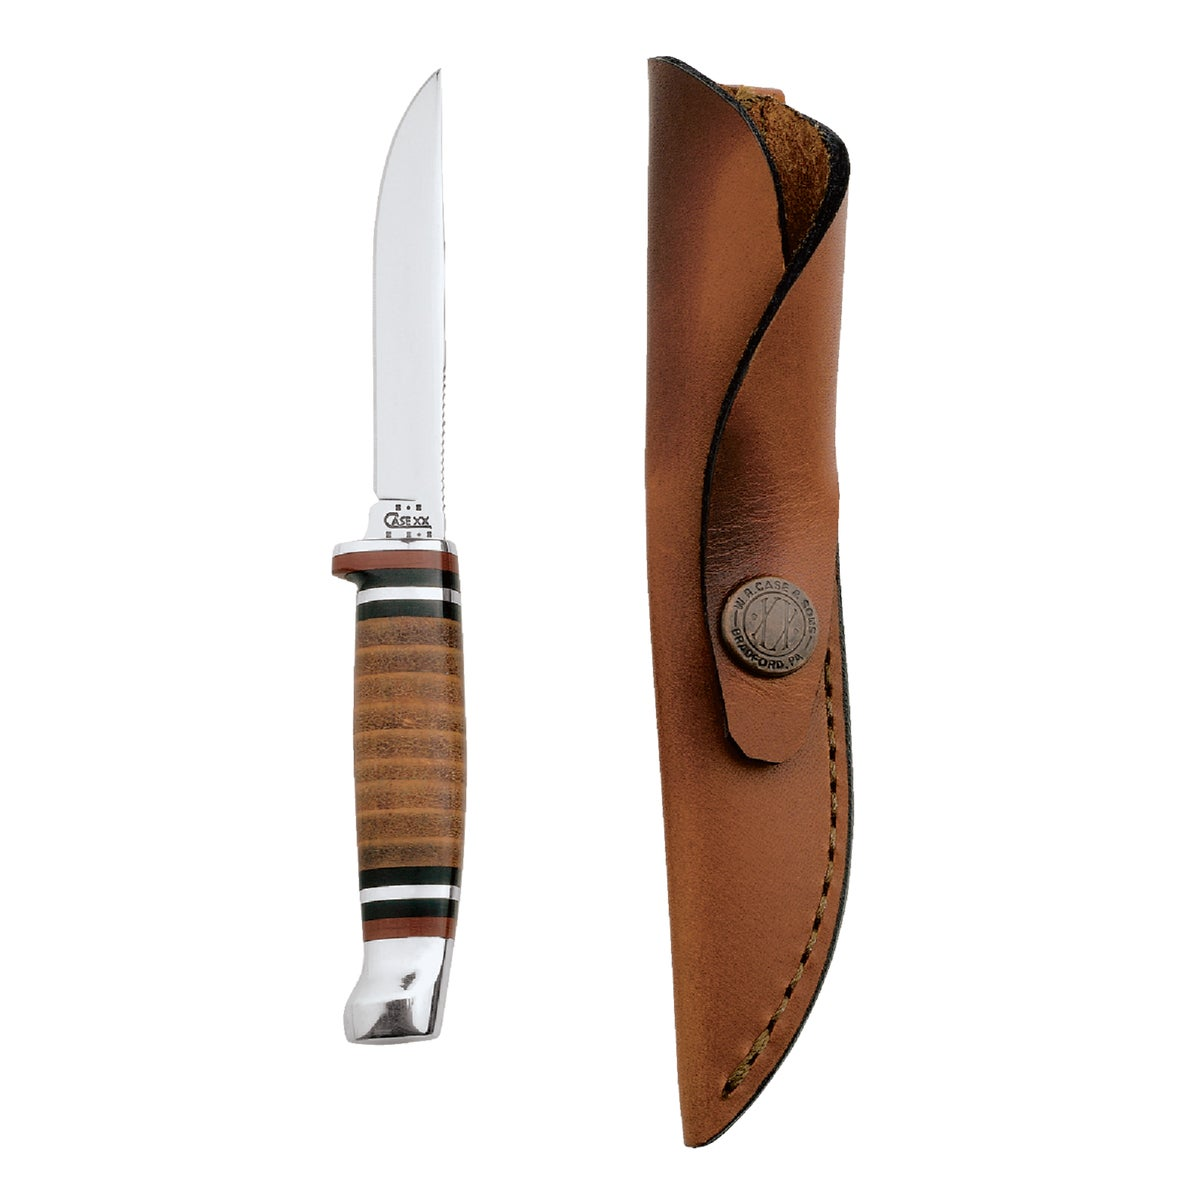 "3"" HUNTER KNIFE - 379 by Case W R & Sons"